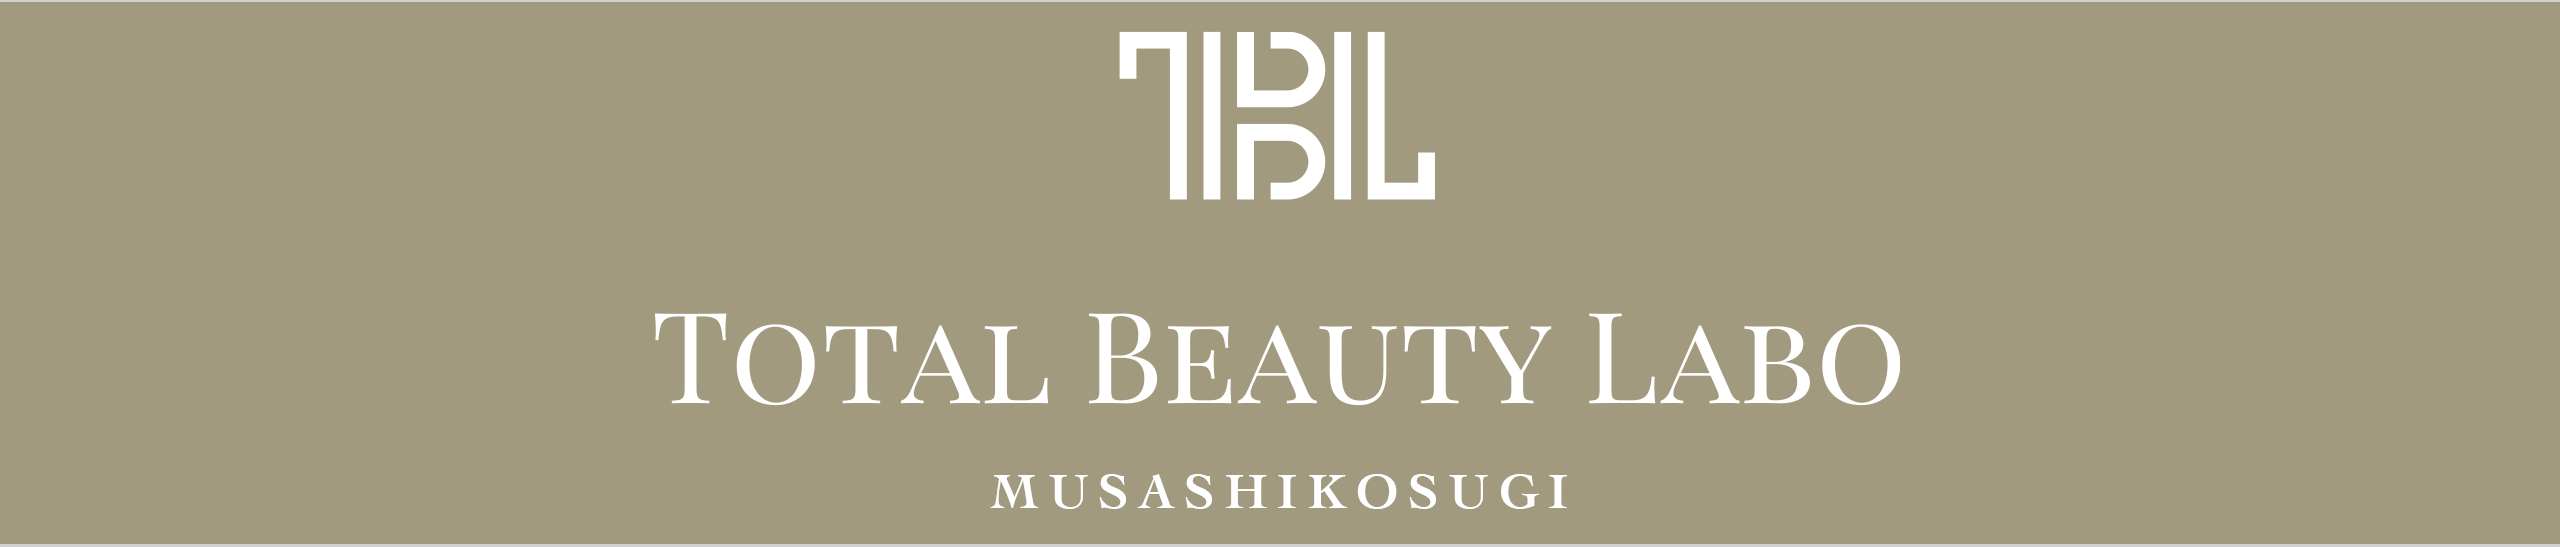 Total Beauty Labo 武蔵小杉店